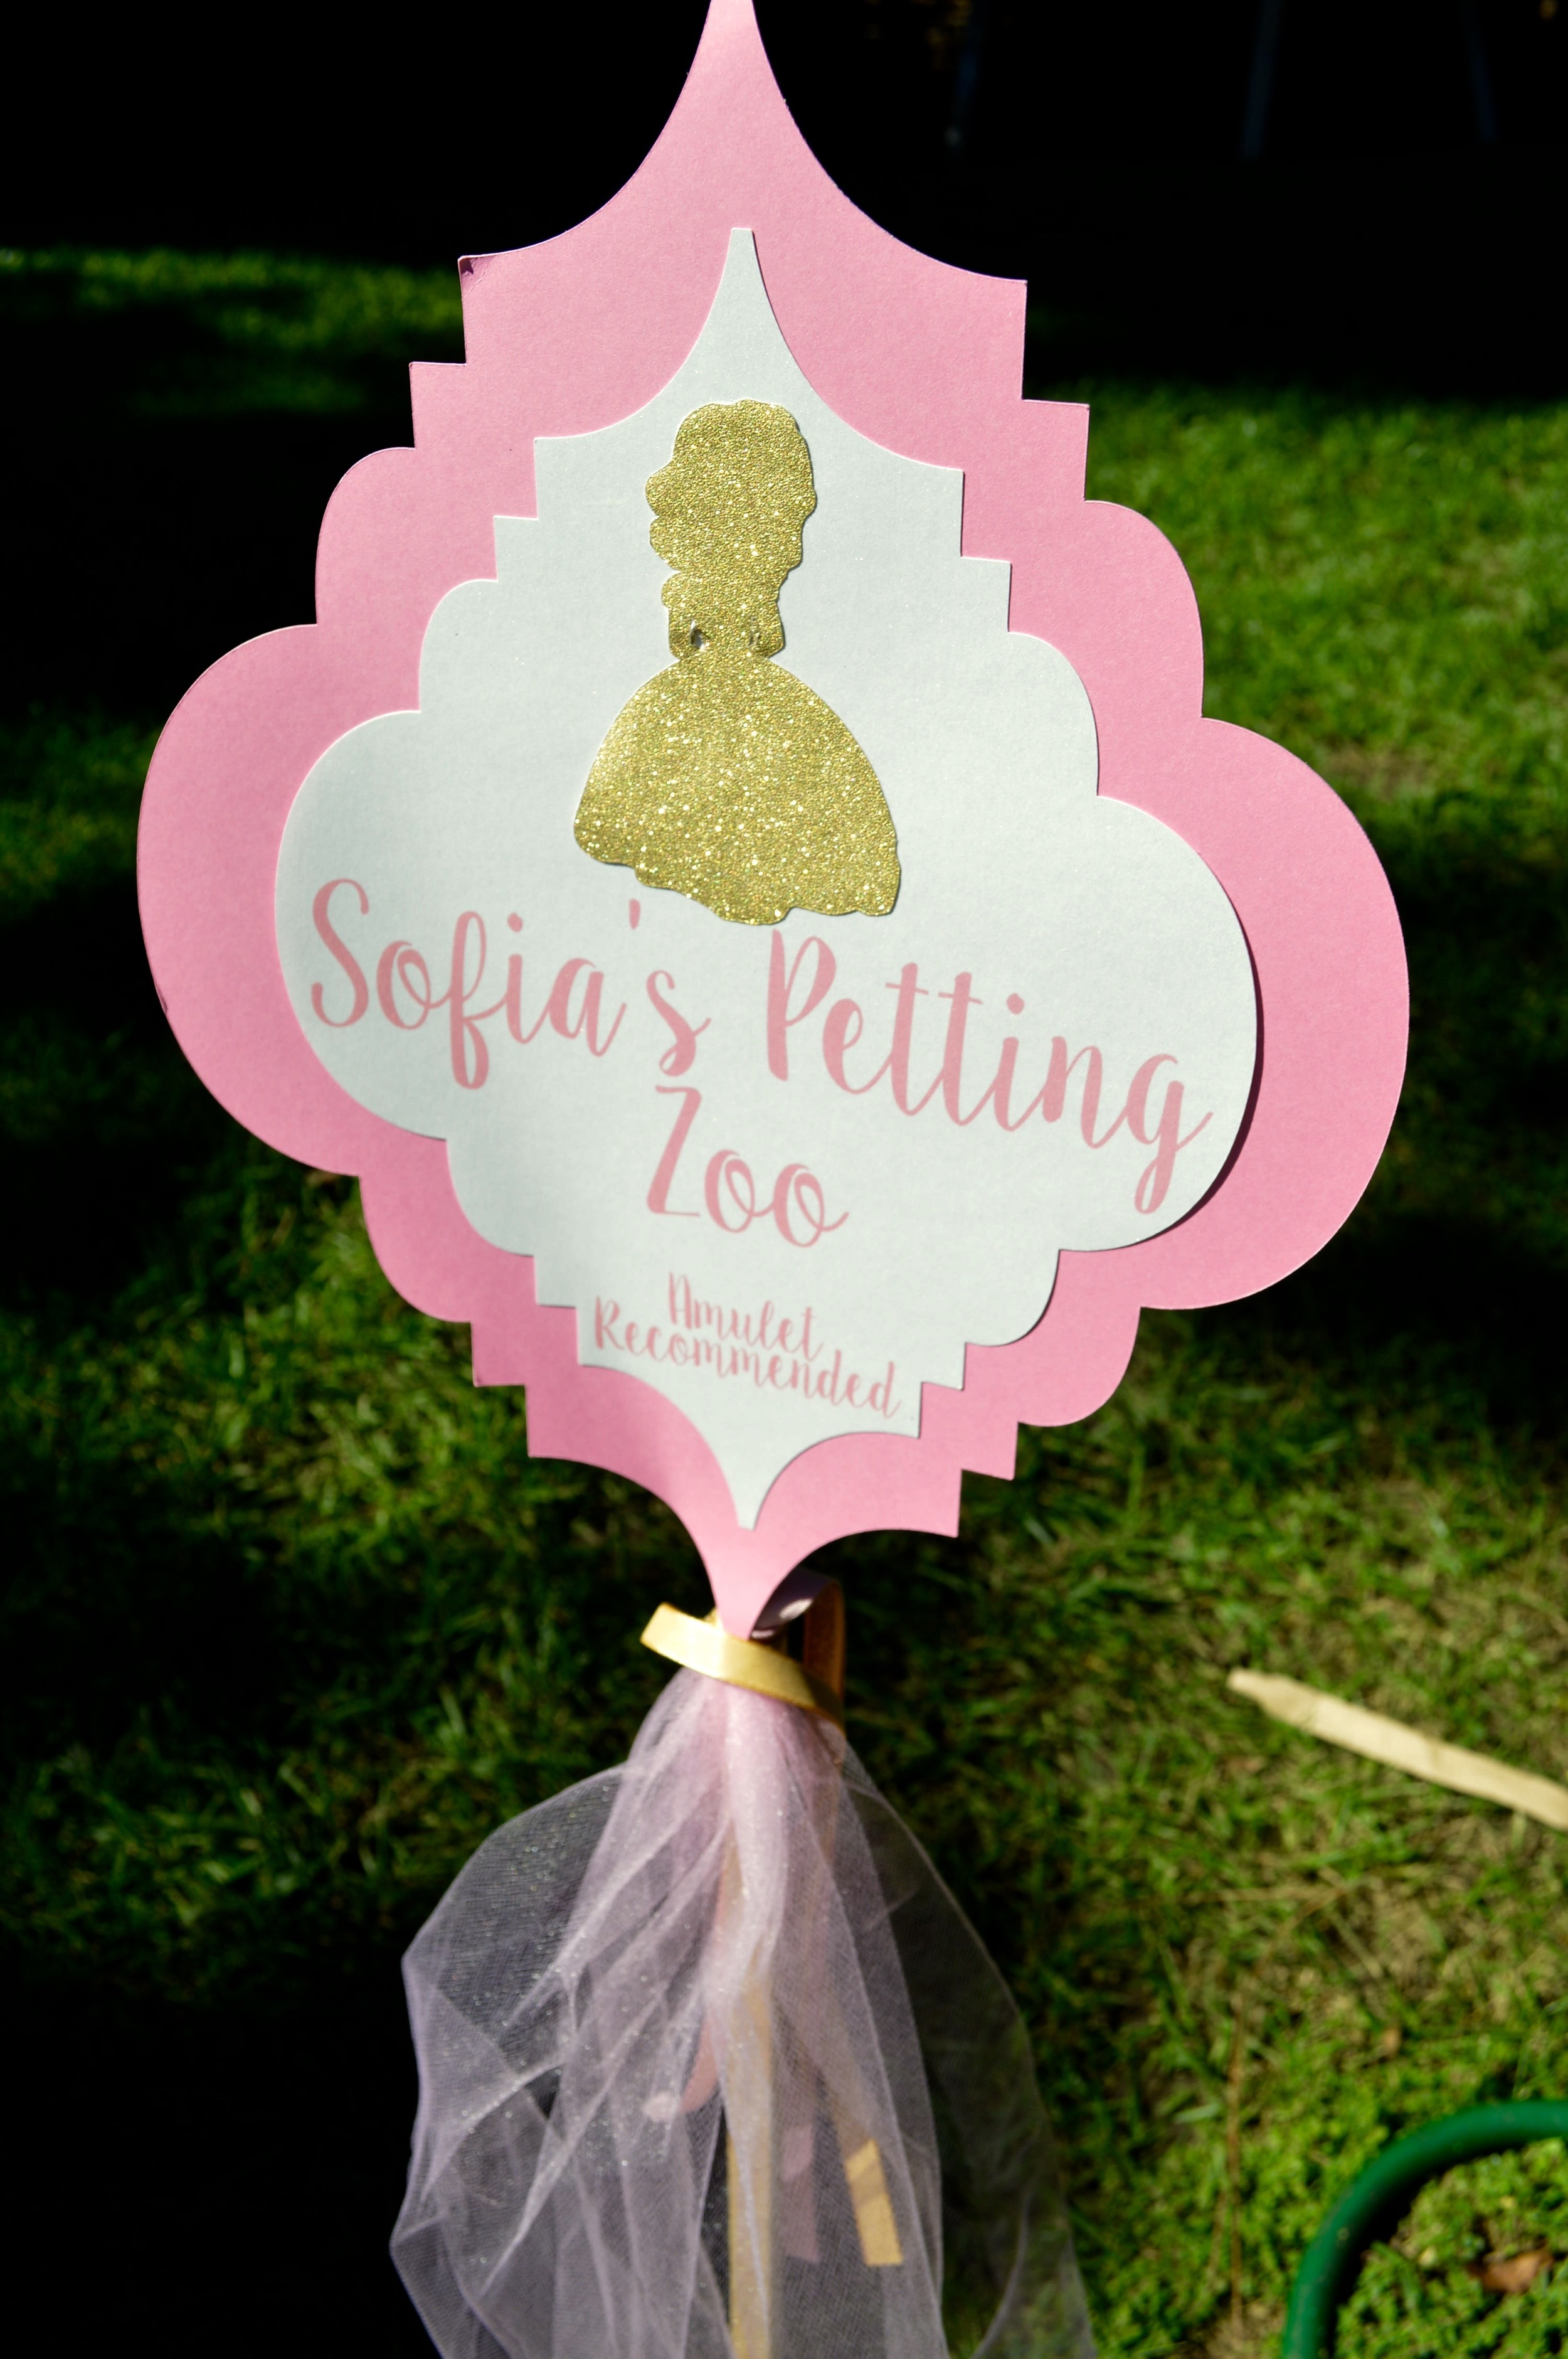 Sofia's Petting Zoo sign by Down Emery Lane